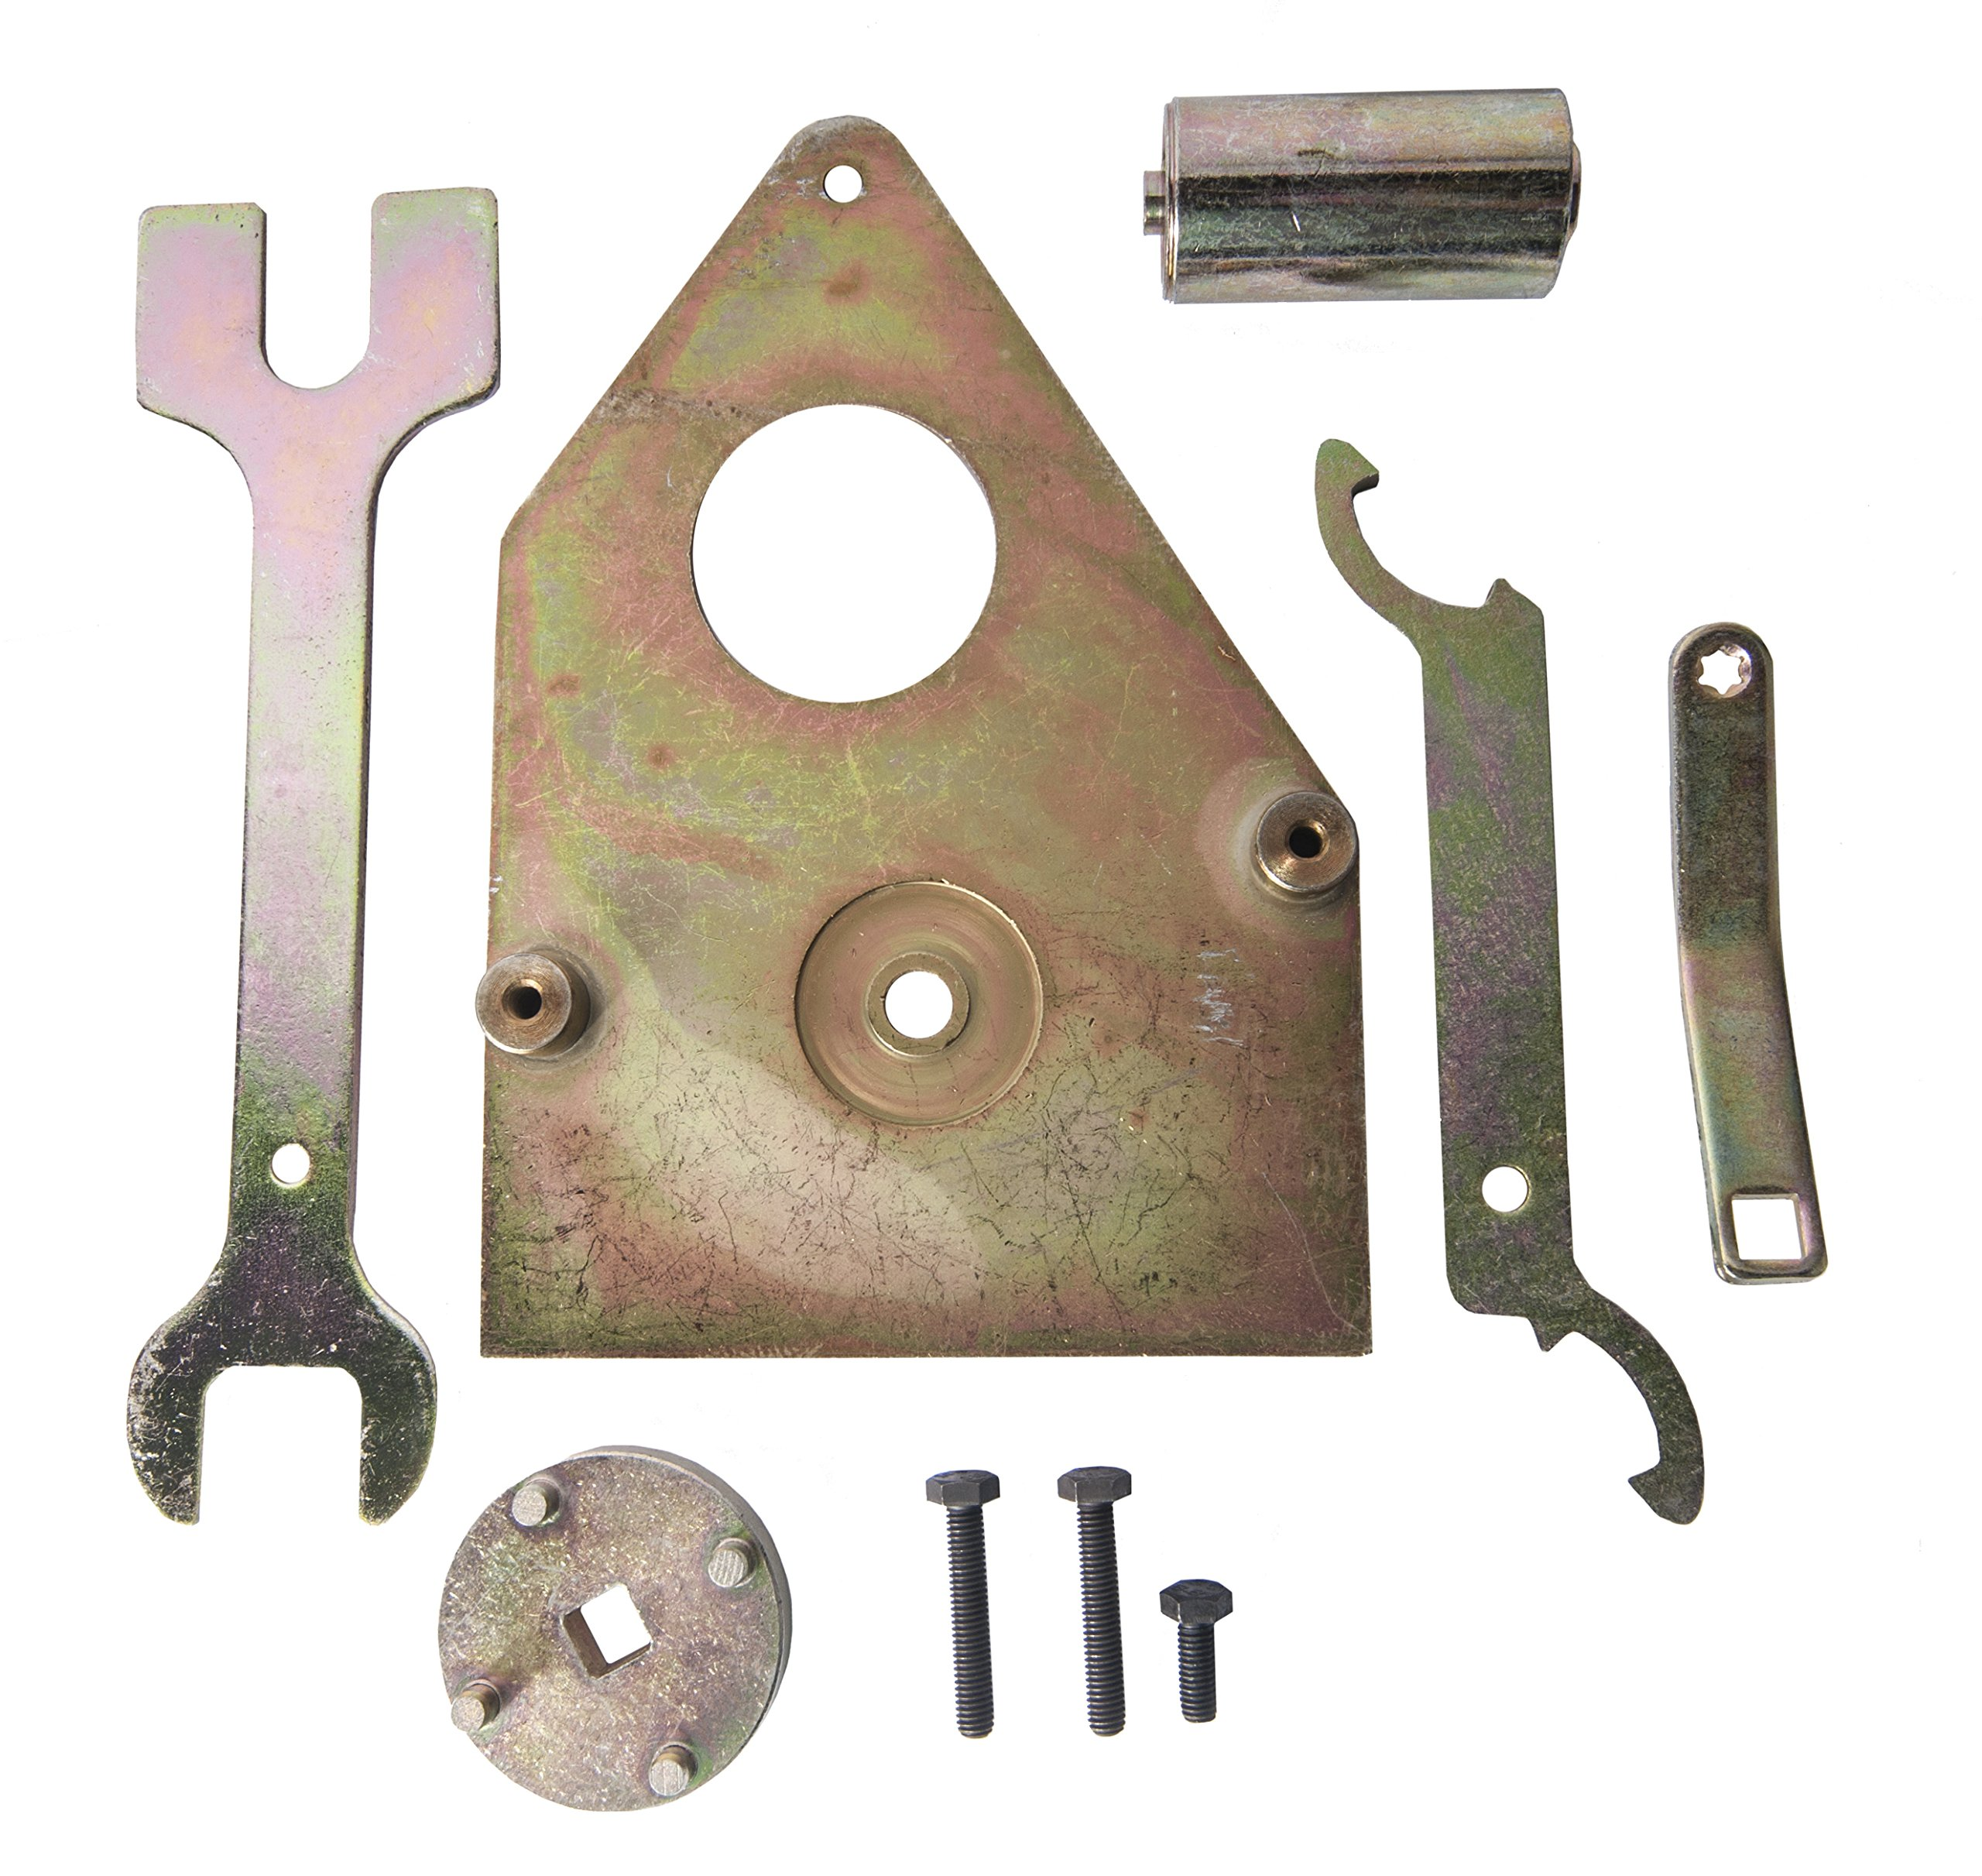 Sea-Doo Supercharger Repair Tools GTX/RXP/Challenger/RXT/Sportster/Speedster/Wake 2003 2004 2005 2006 2007 2008 by SBT